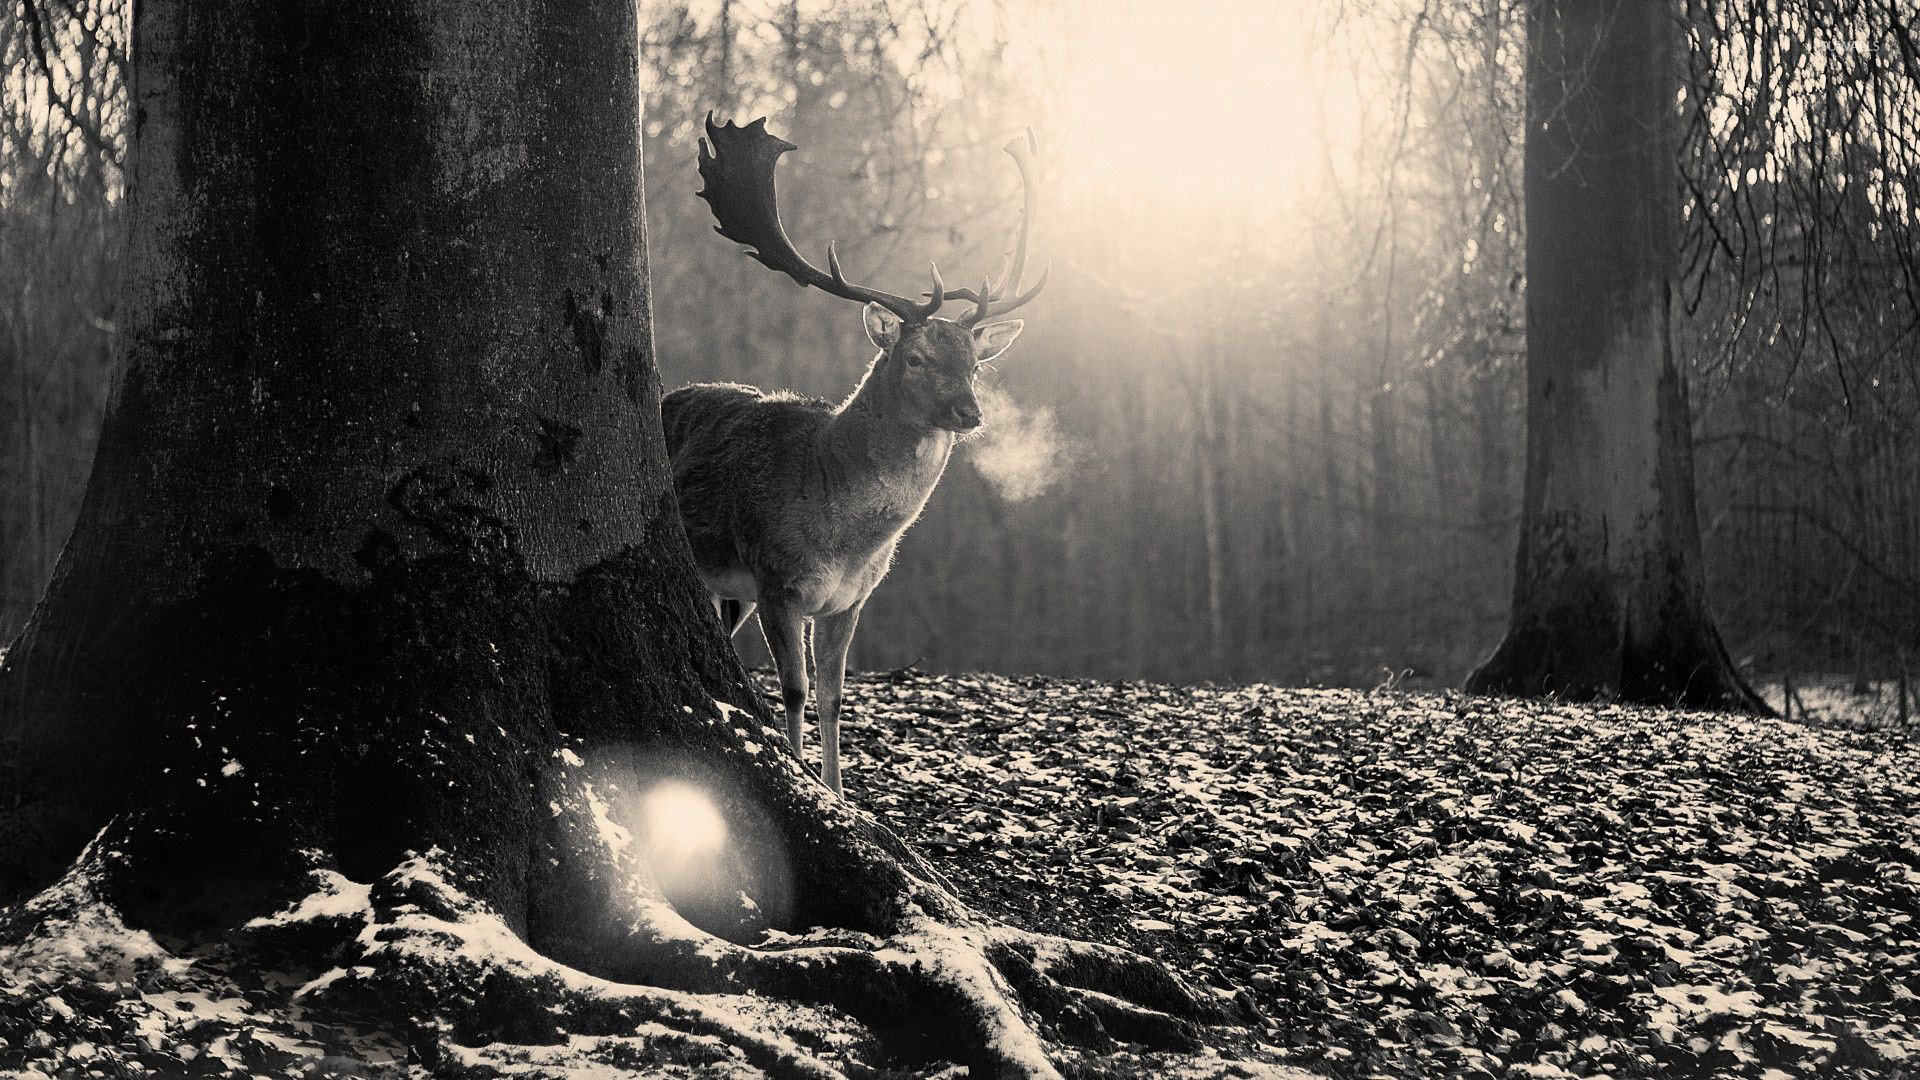 Cool Wallpaper Forest Deer - deer-in-the-forest-28627-1920x1080  Graphic_793939 .jpg